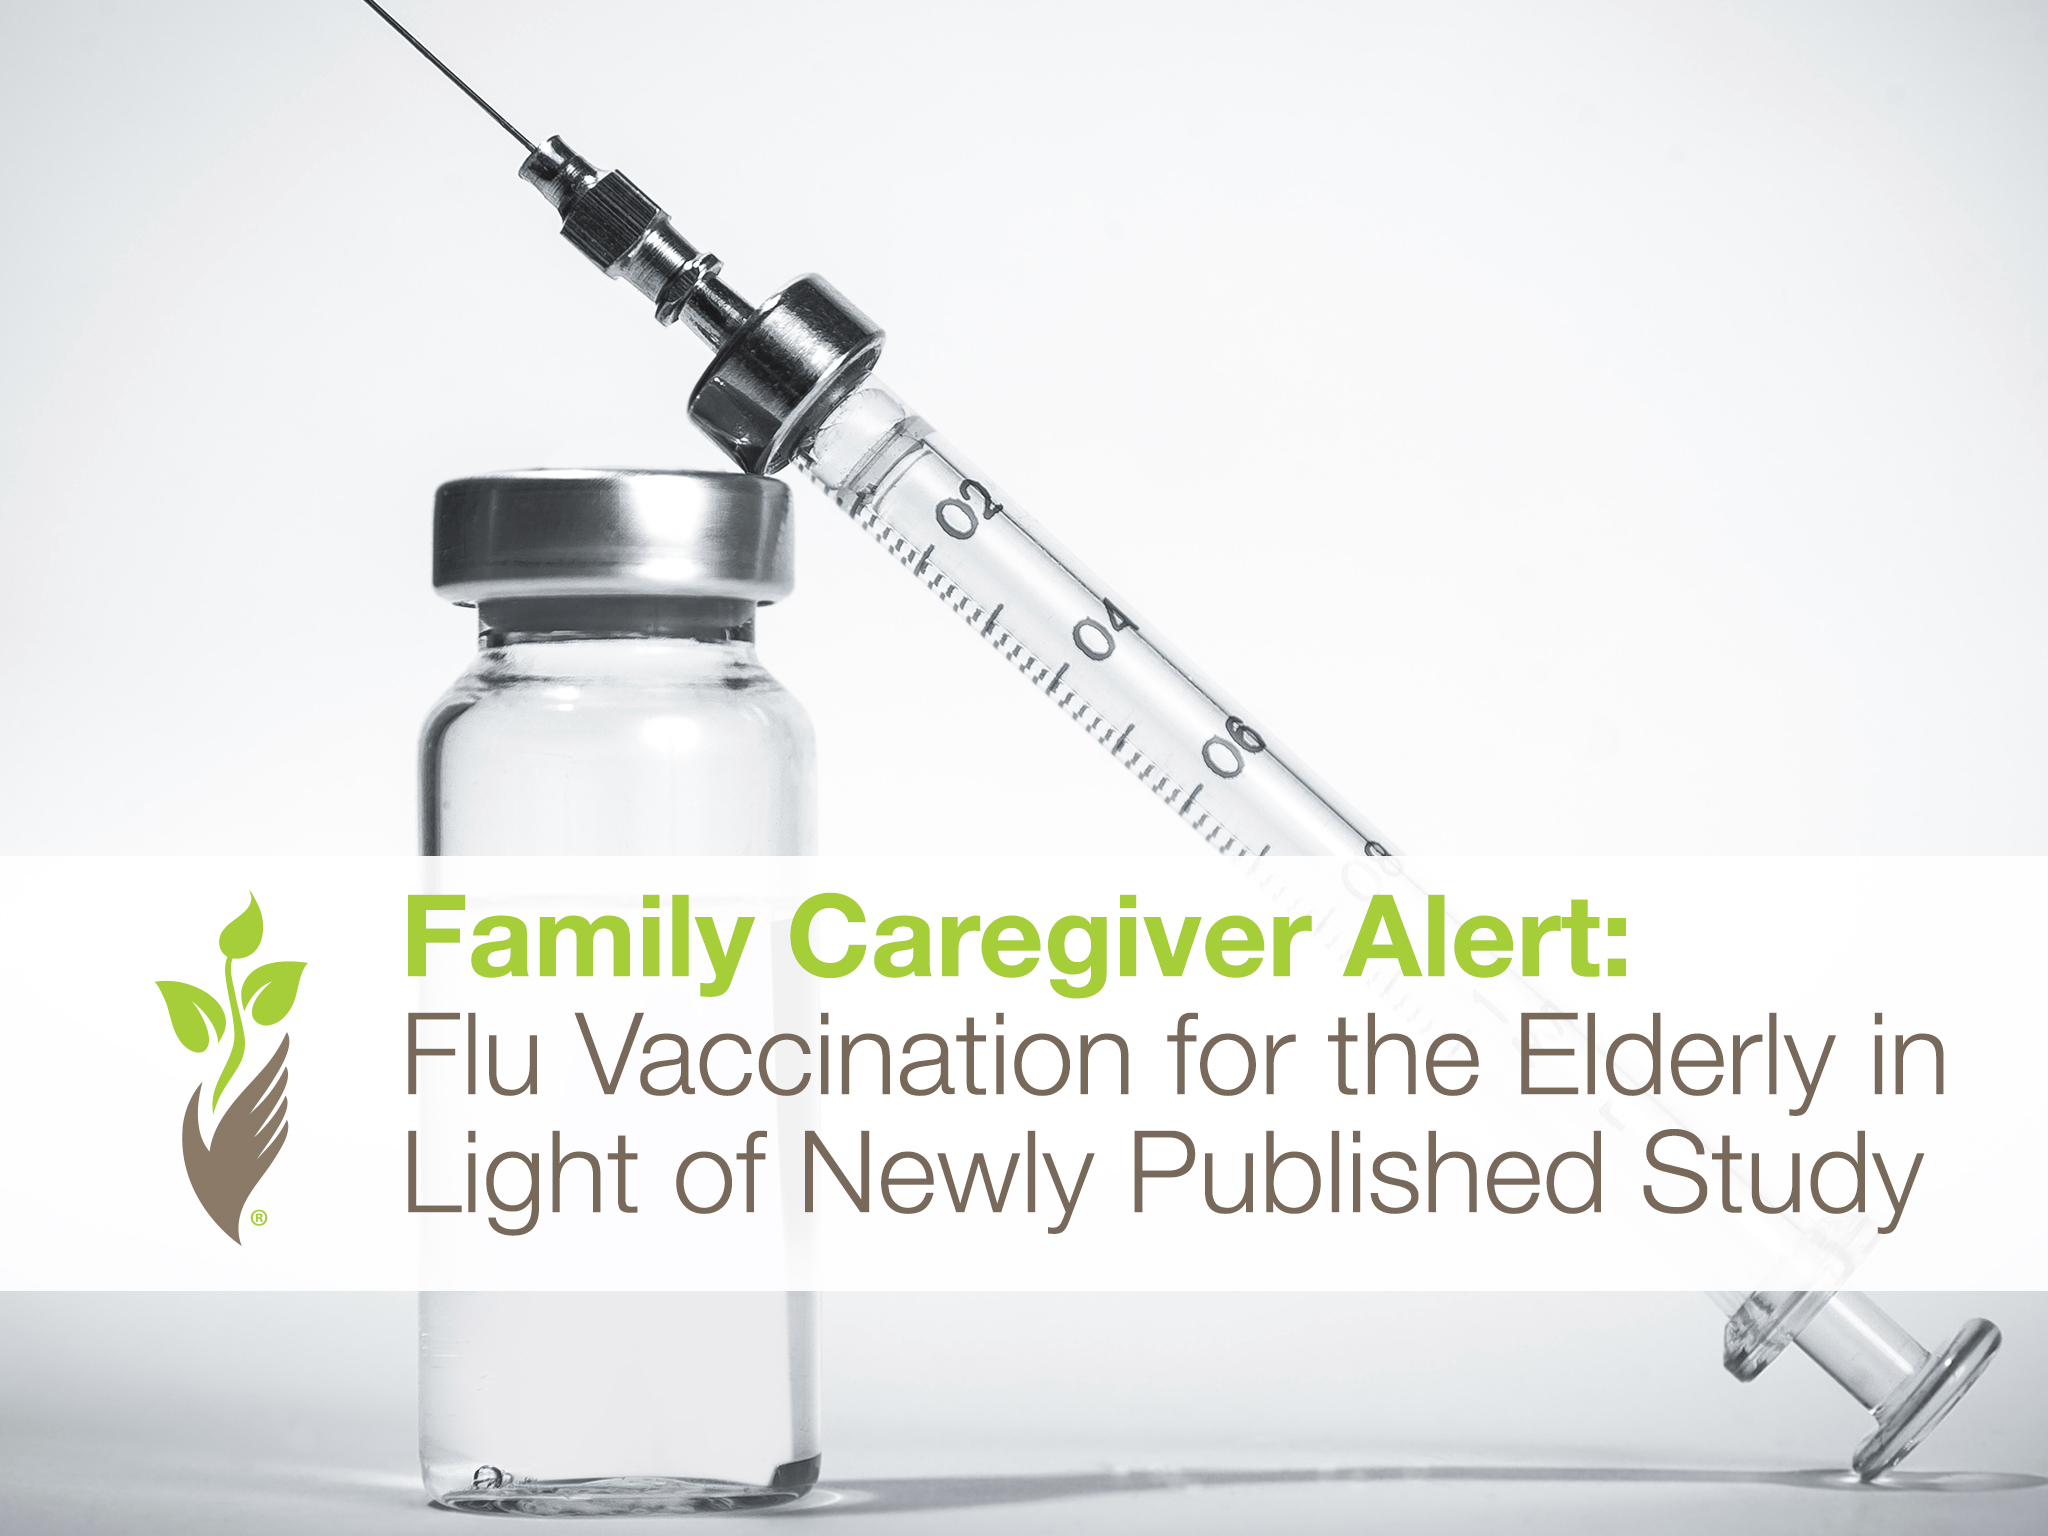 Family Caregiver Alert: Flu Vaccination for the Elderly in Light of Newly Published Study